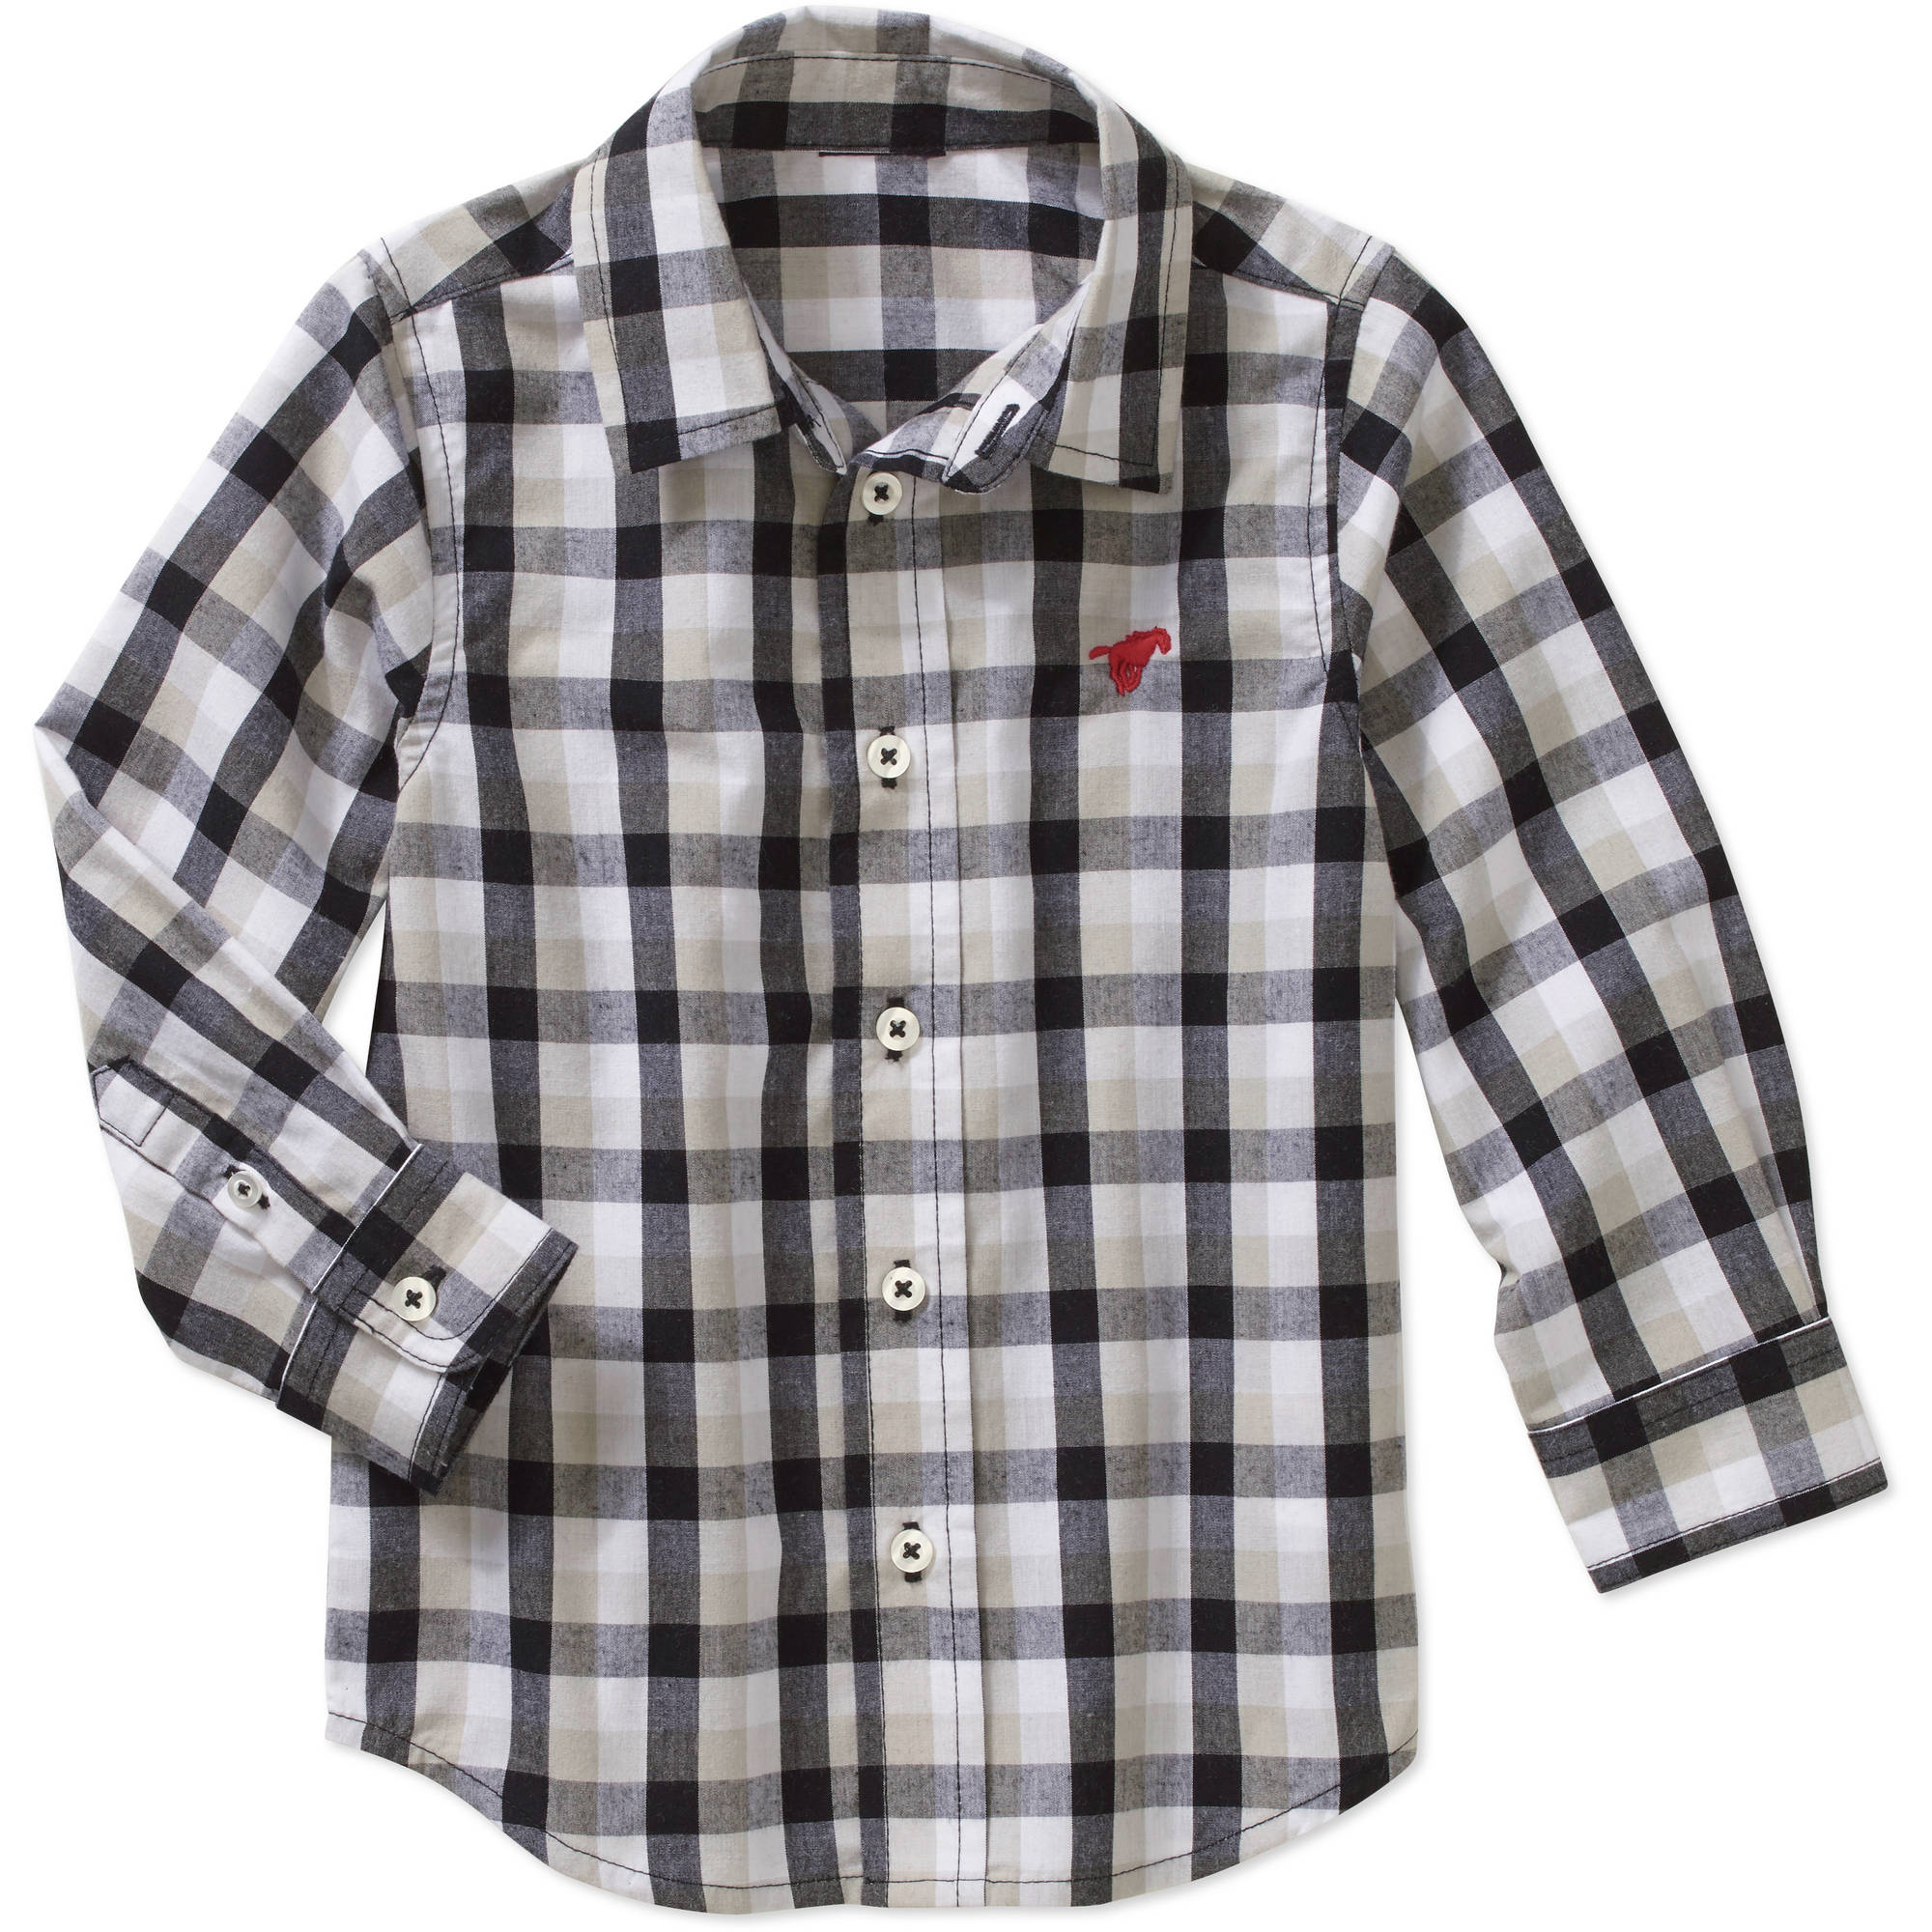 Wrangler Toddler Boys' Long Sleeve Plaid Woven Shirt